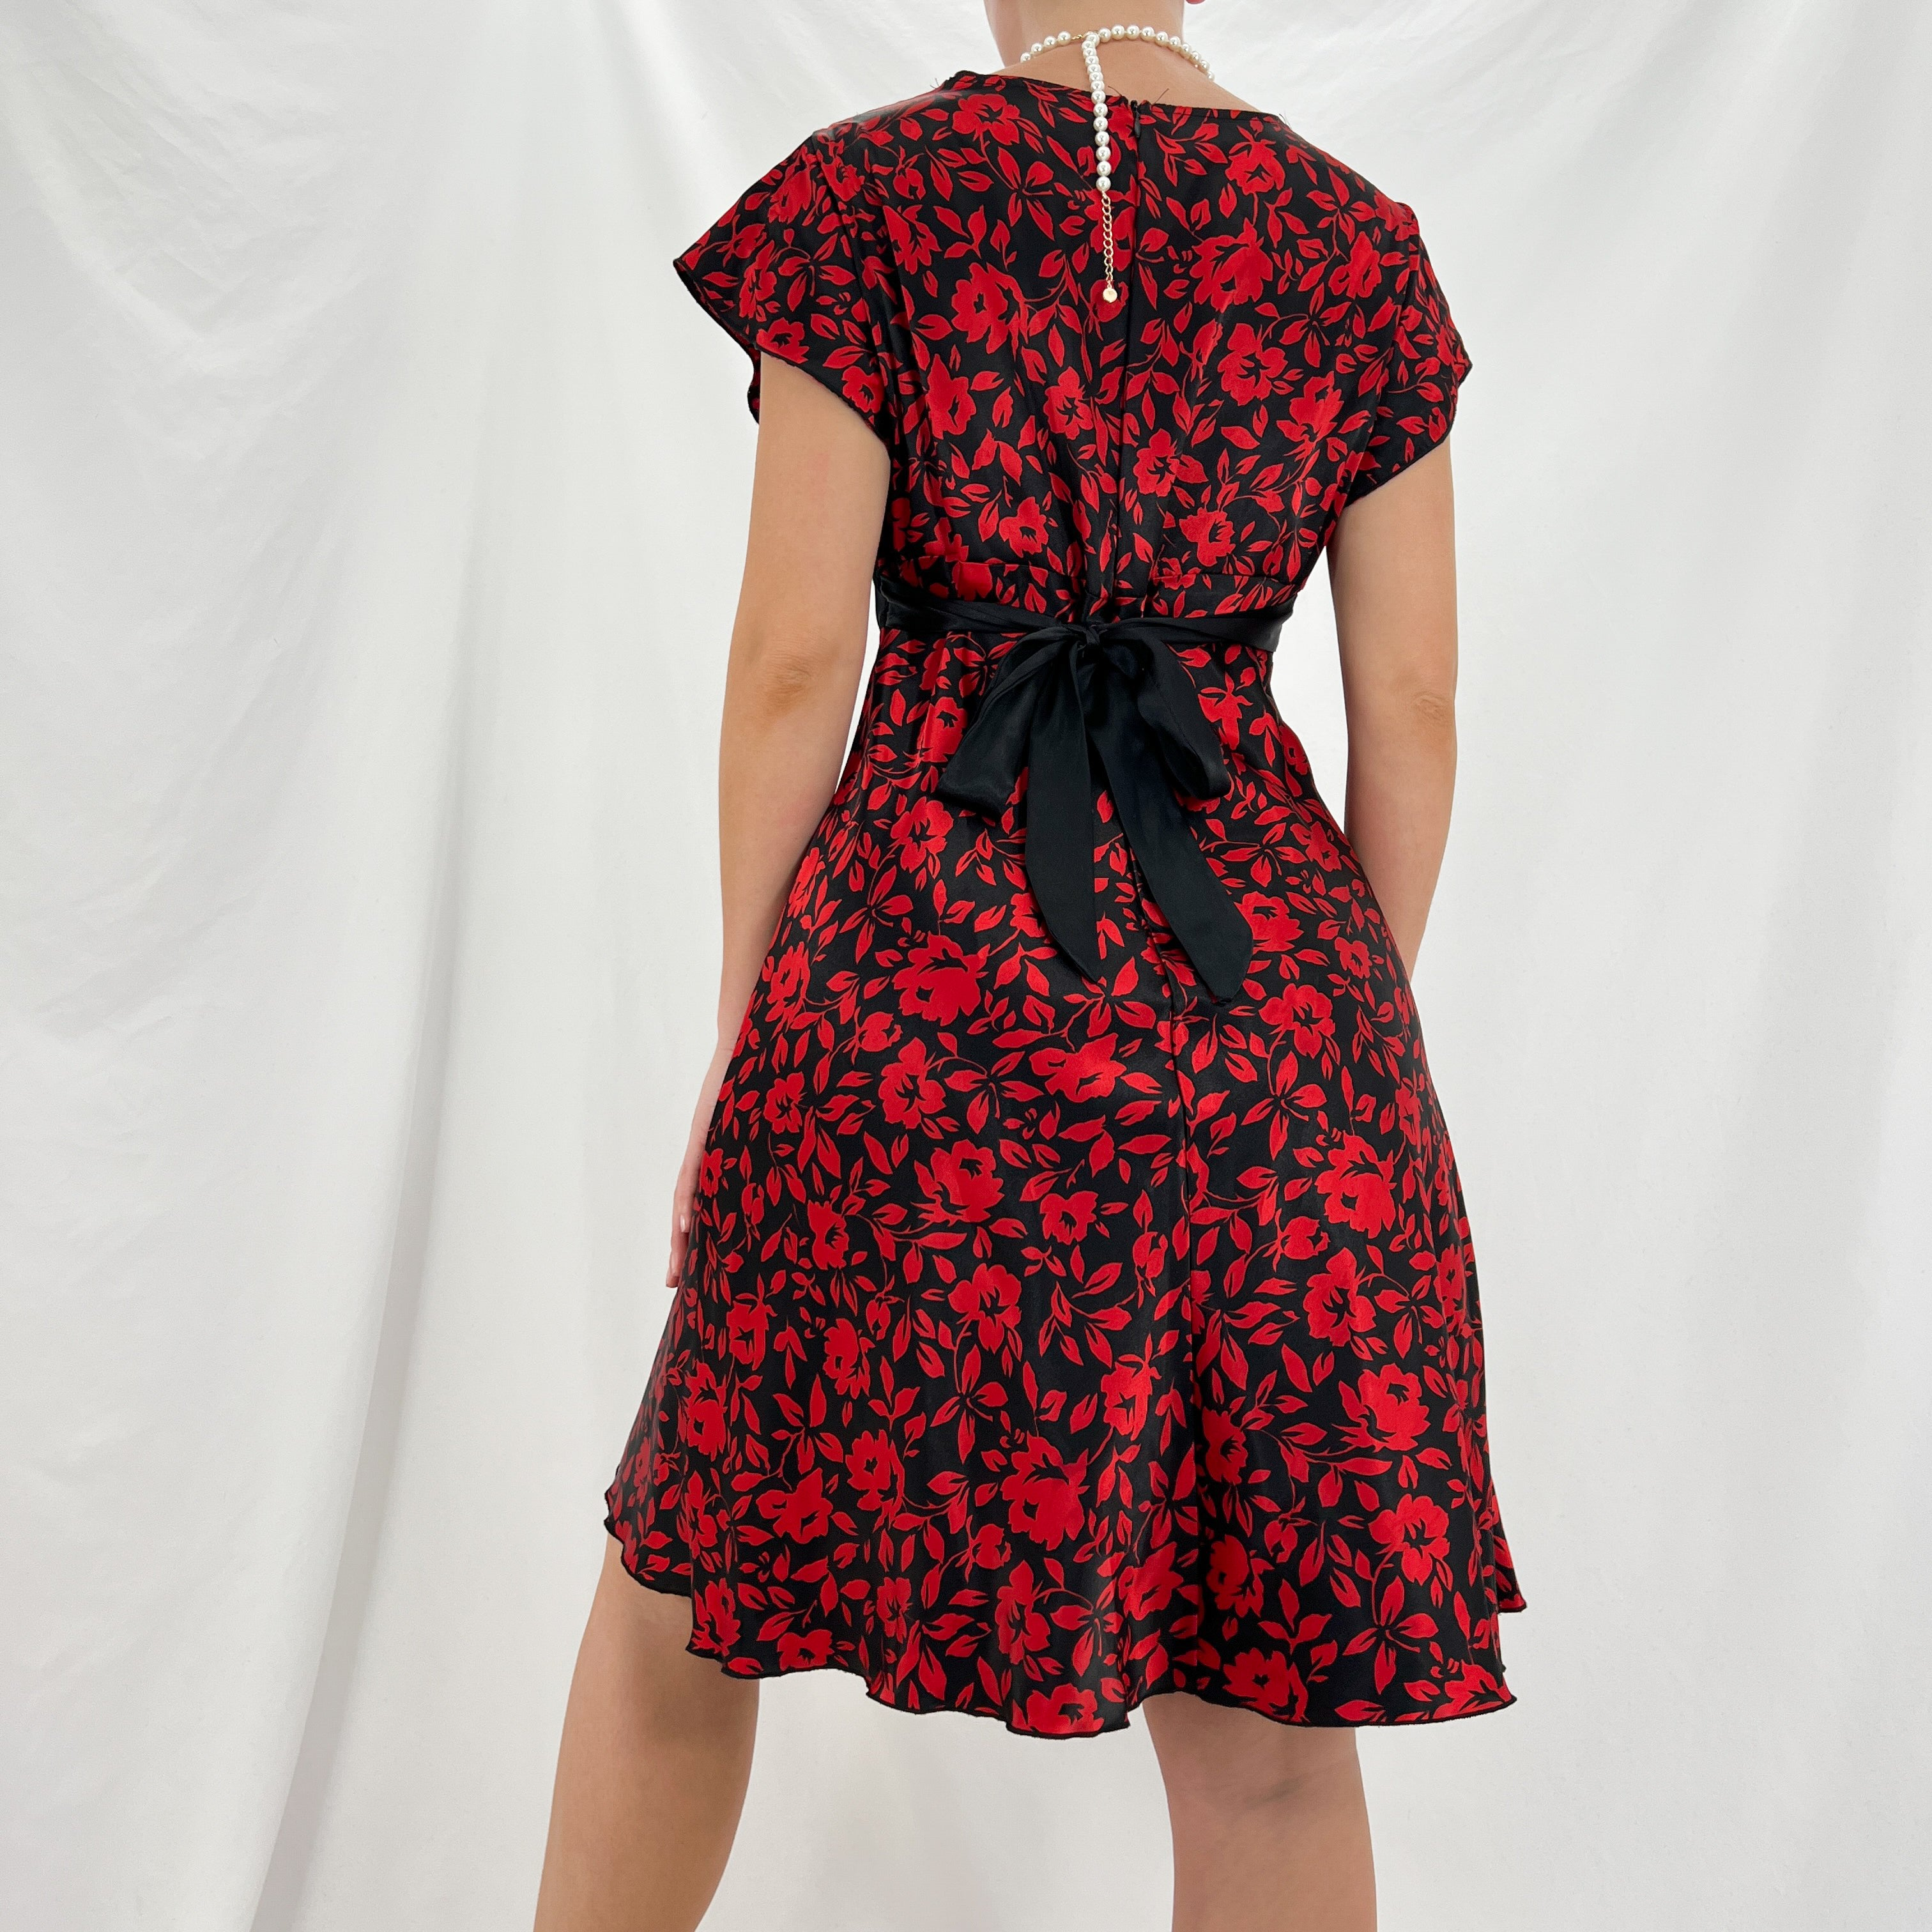 Y2k Black V-Neck Dress [M]